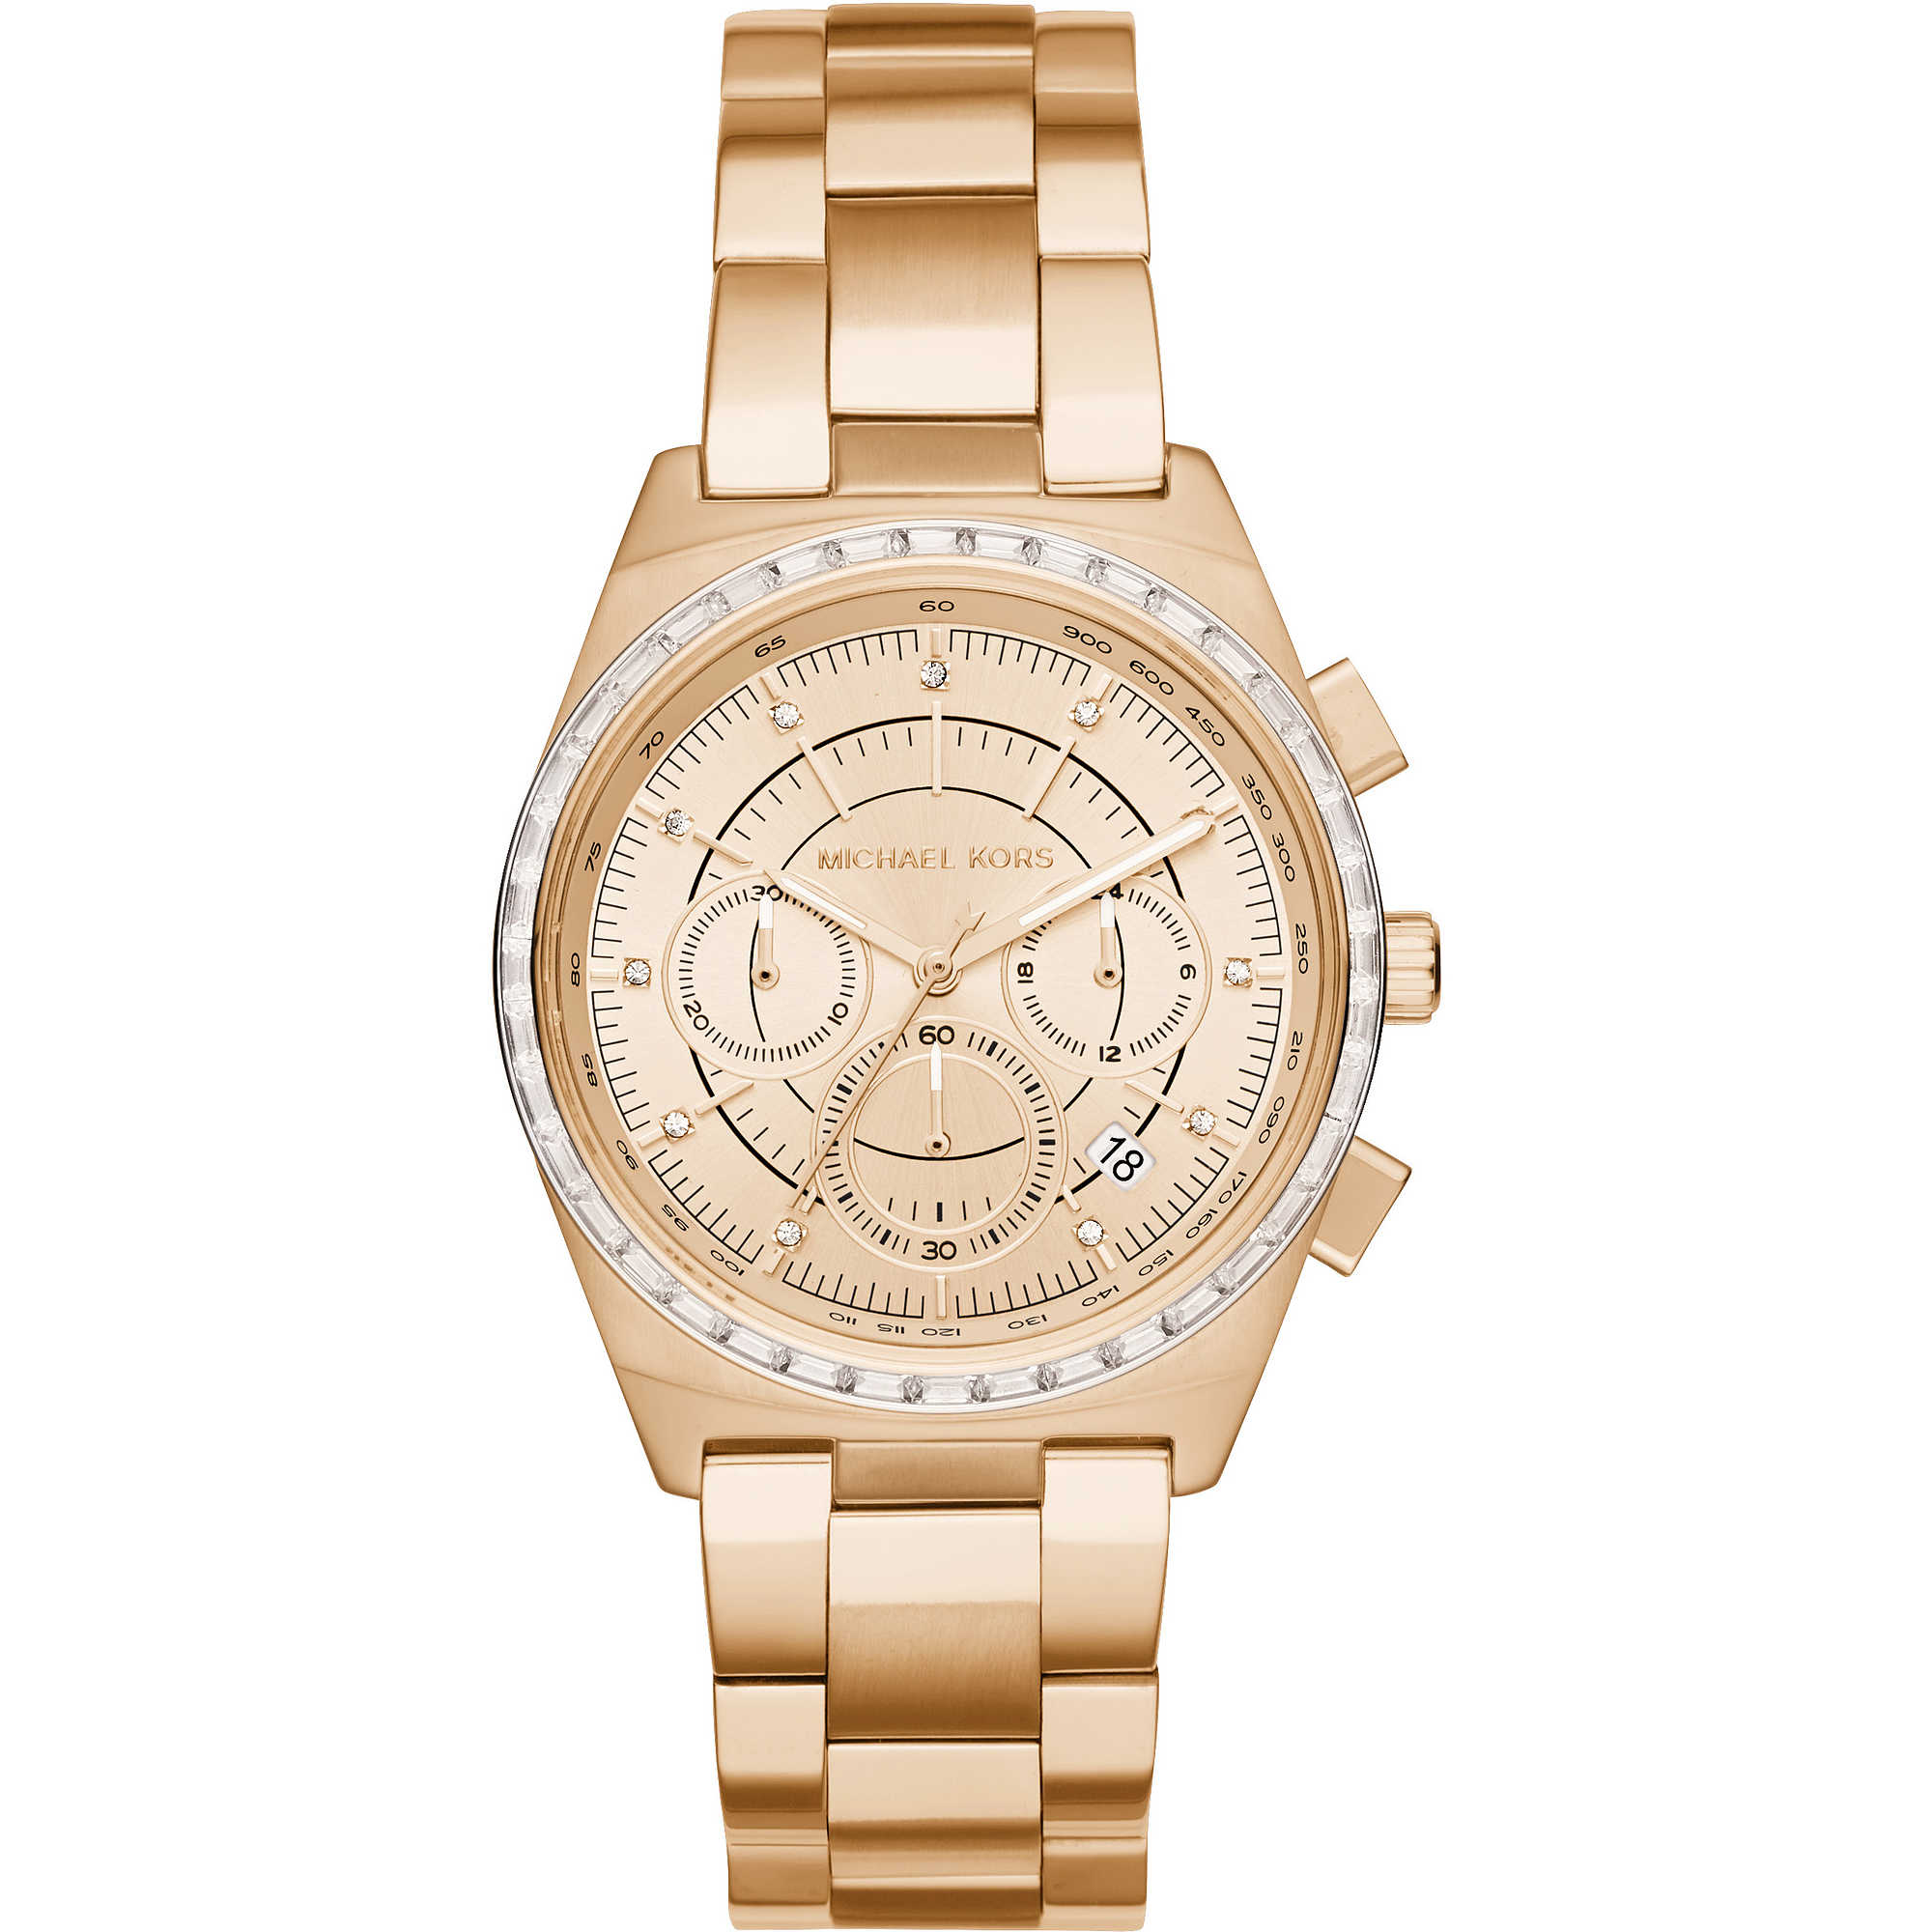 watch chronograph woman michael kors mk6421 chronographs